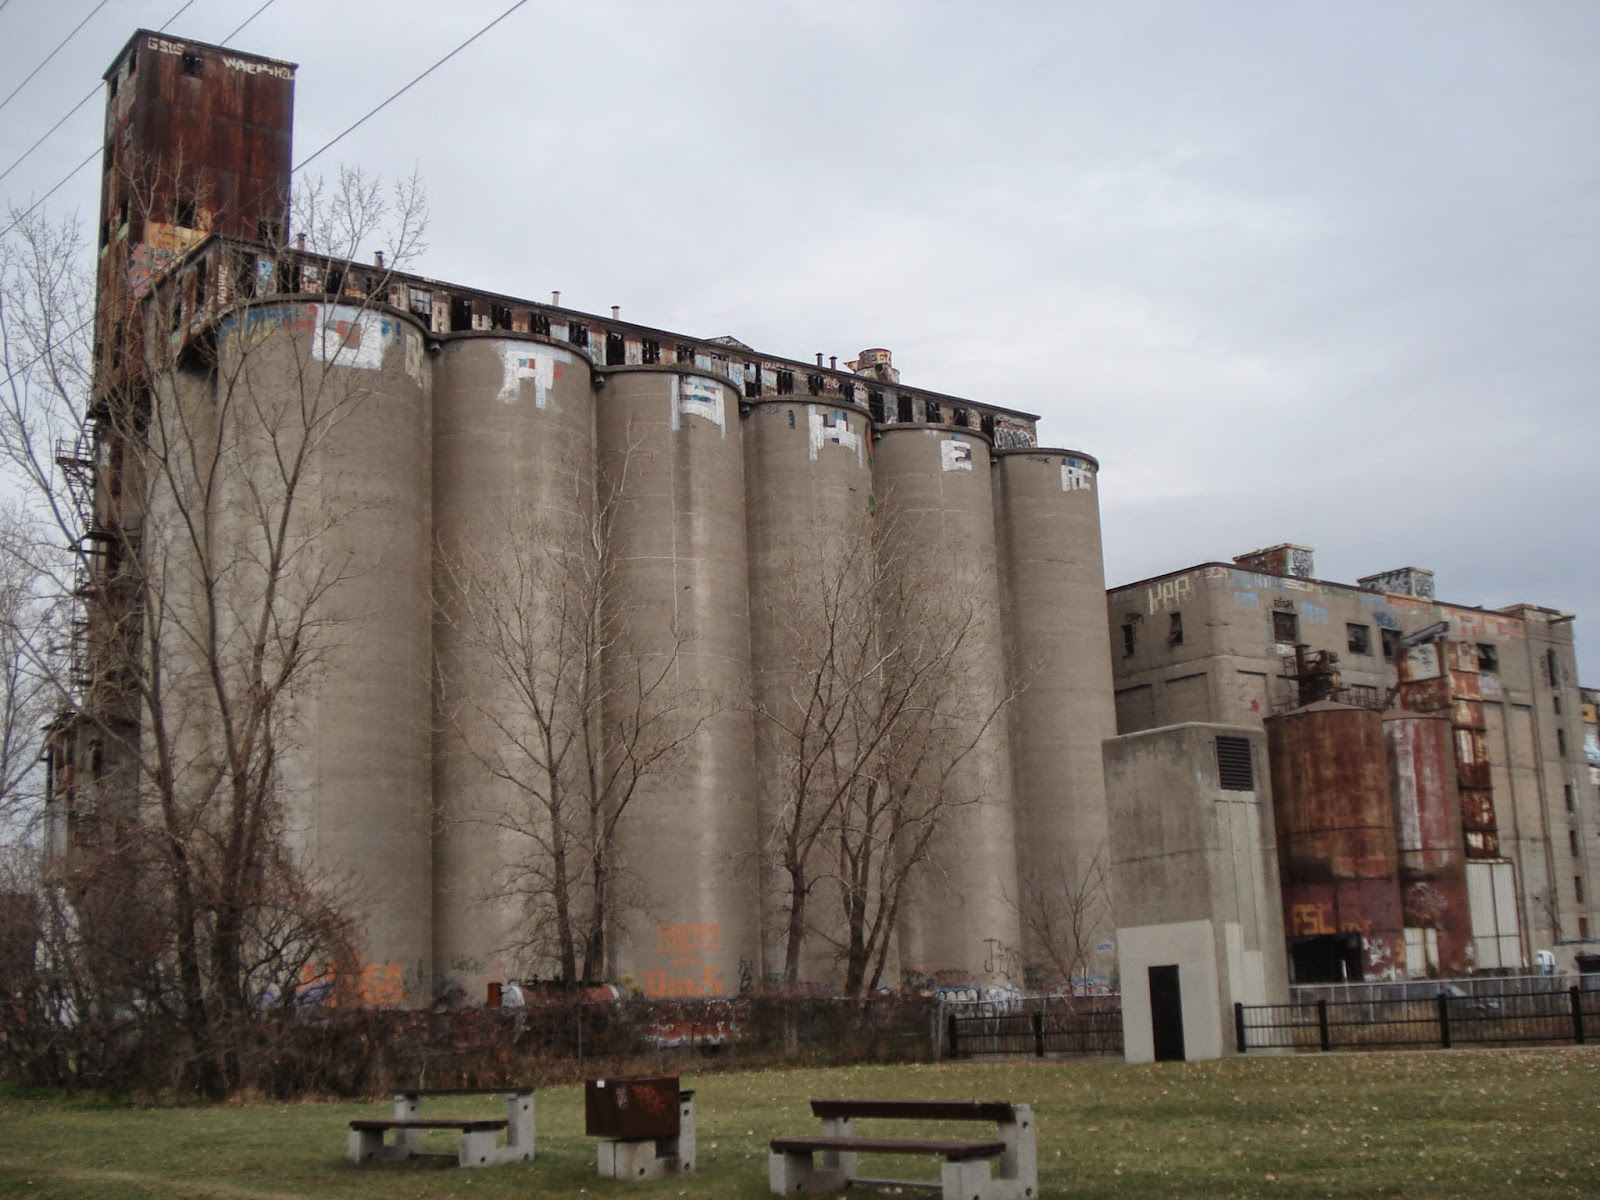 http://www.blogto.com/city/2015/03/whats_happening_with_torontos_waterfront_silos/